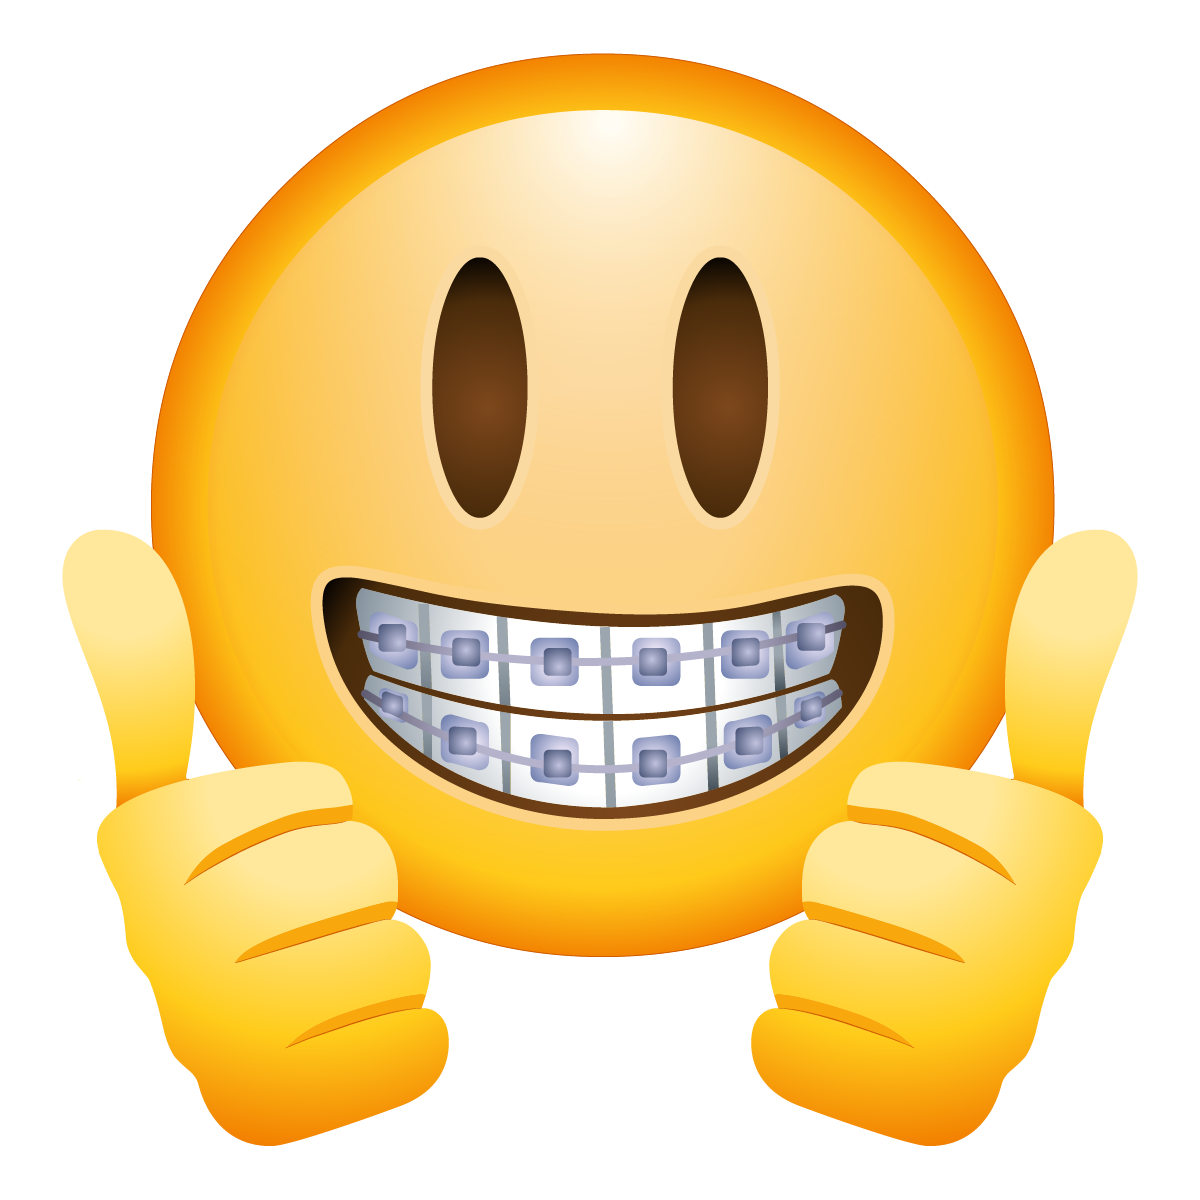 Study clipart emoticon. This is my new